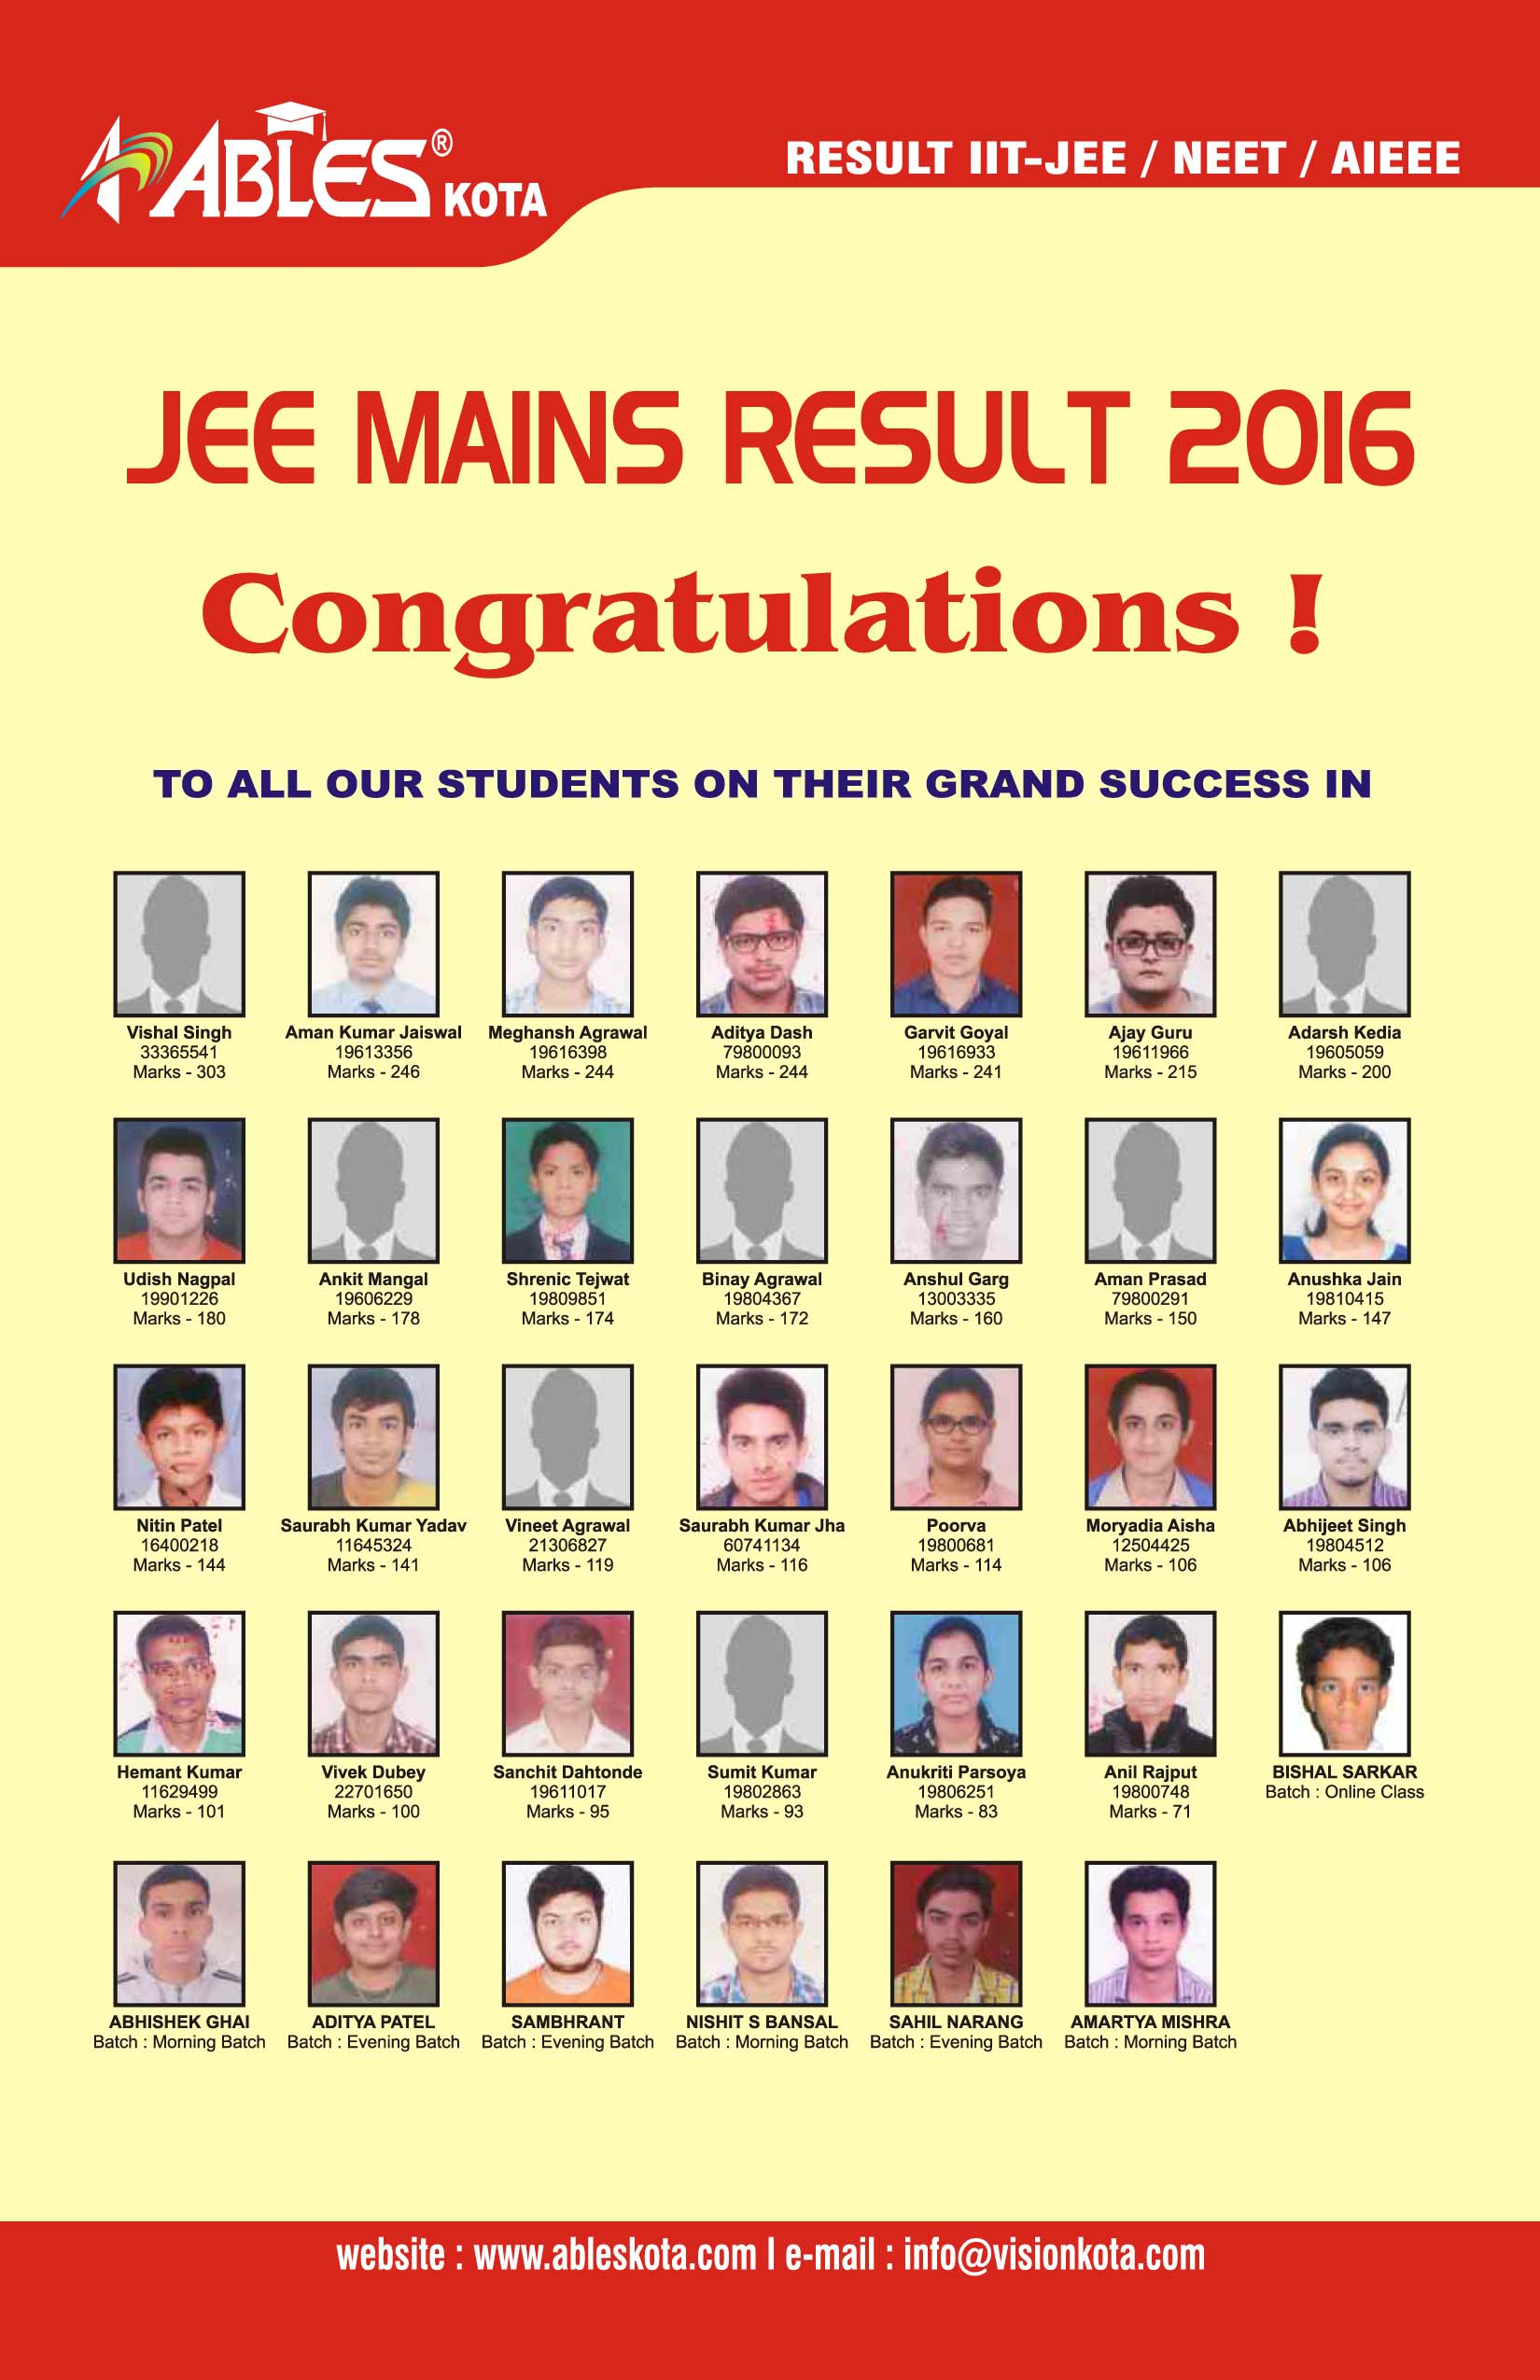 jee 2016 mains result